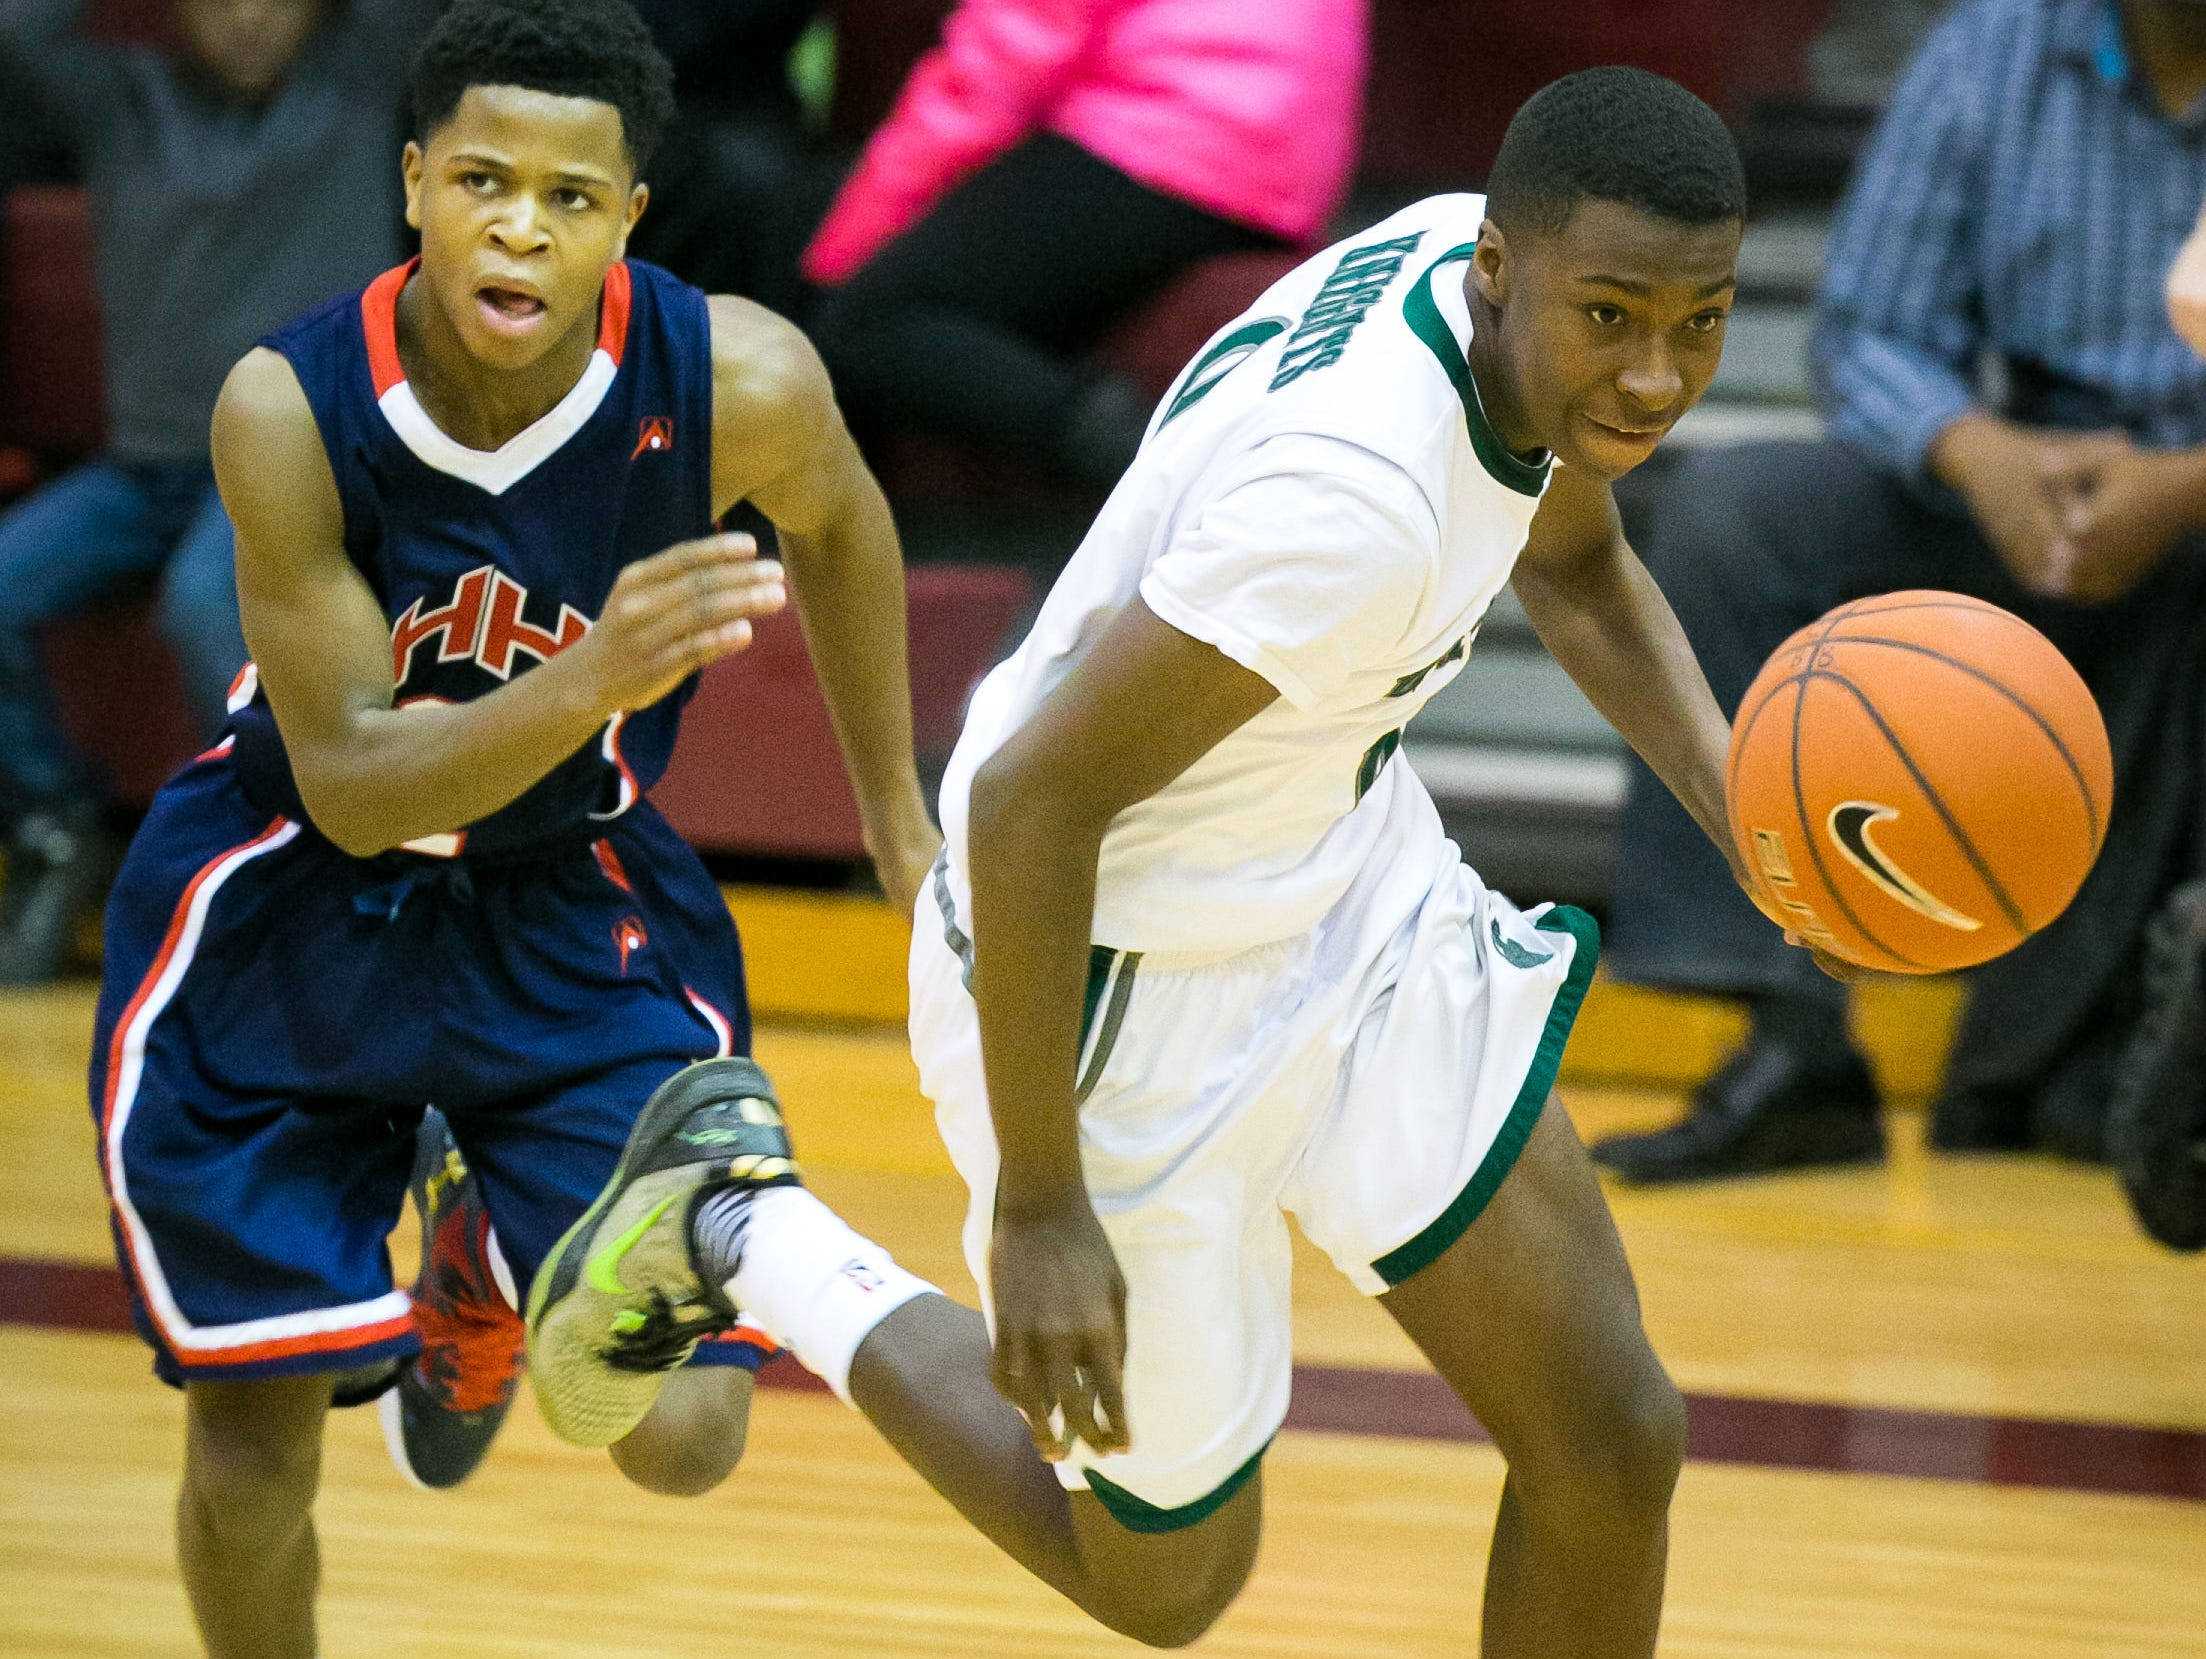 Raheim Burnett of Mount Pleasant steals the ball from Deshawn Latham of American History team at the 5th Annual Concord Classic.